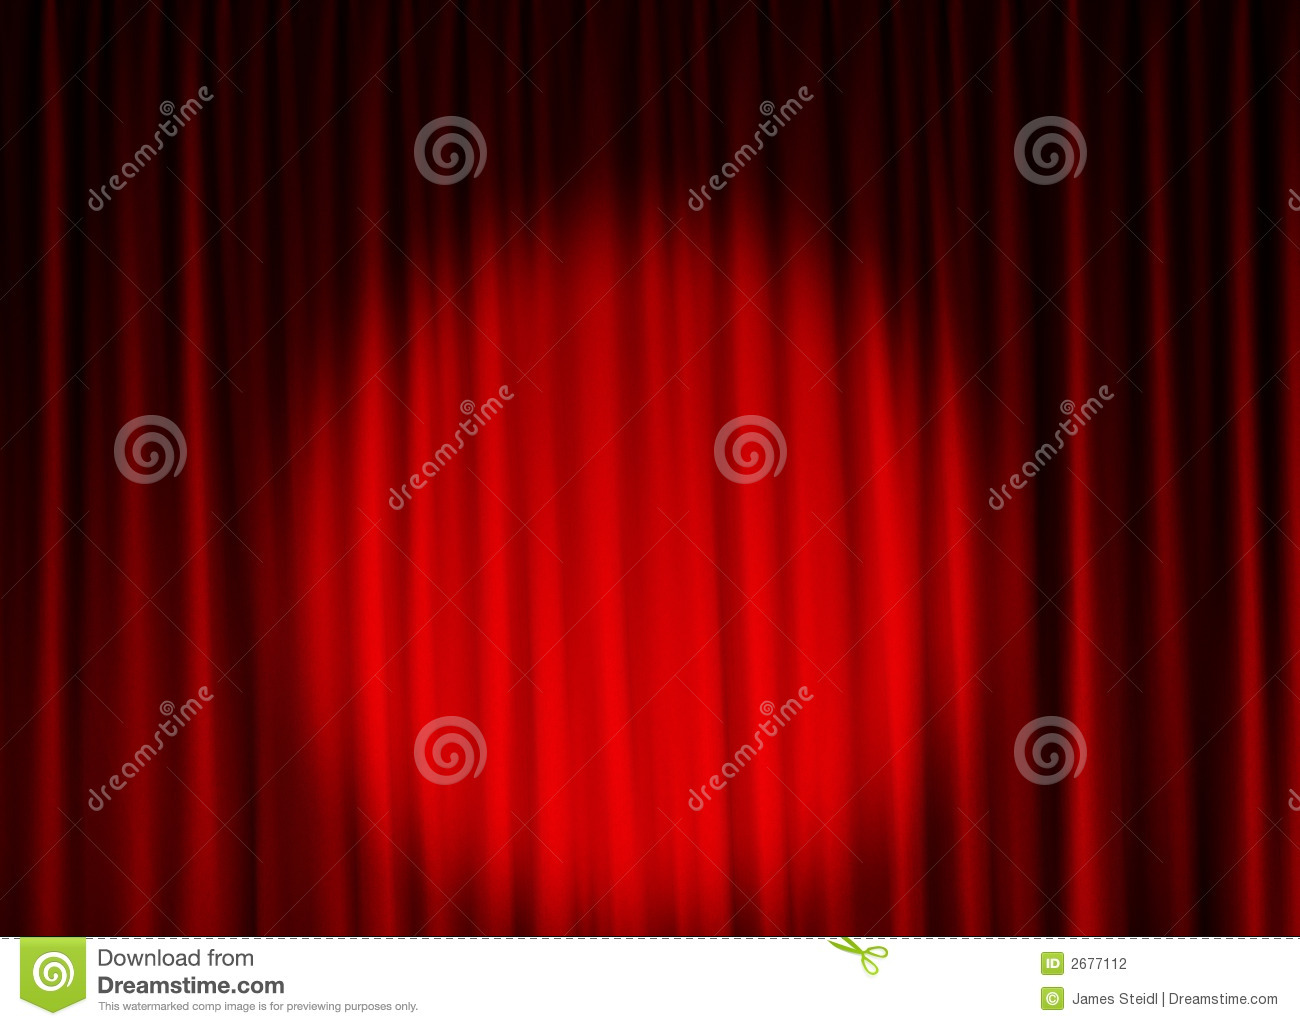 Free psd store red curtain background - Stage Curtains Background Purple Black Pictures